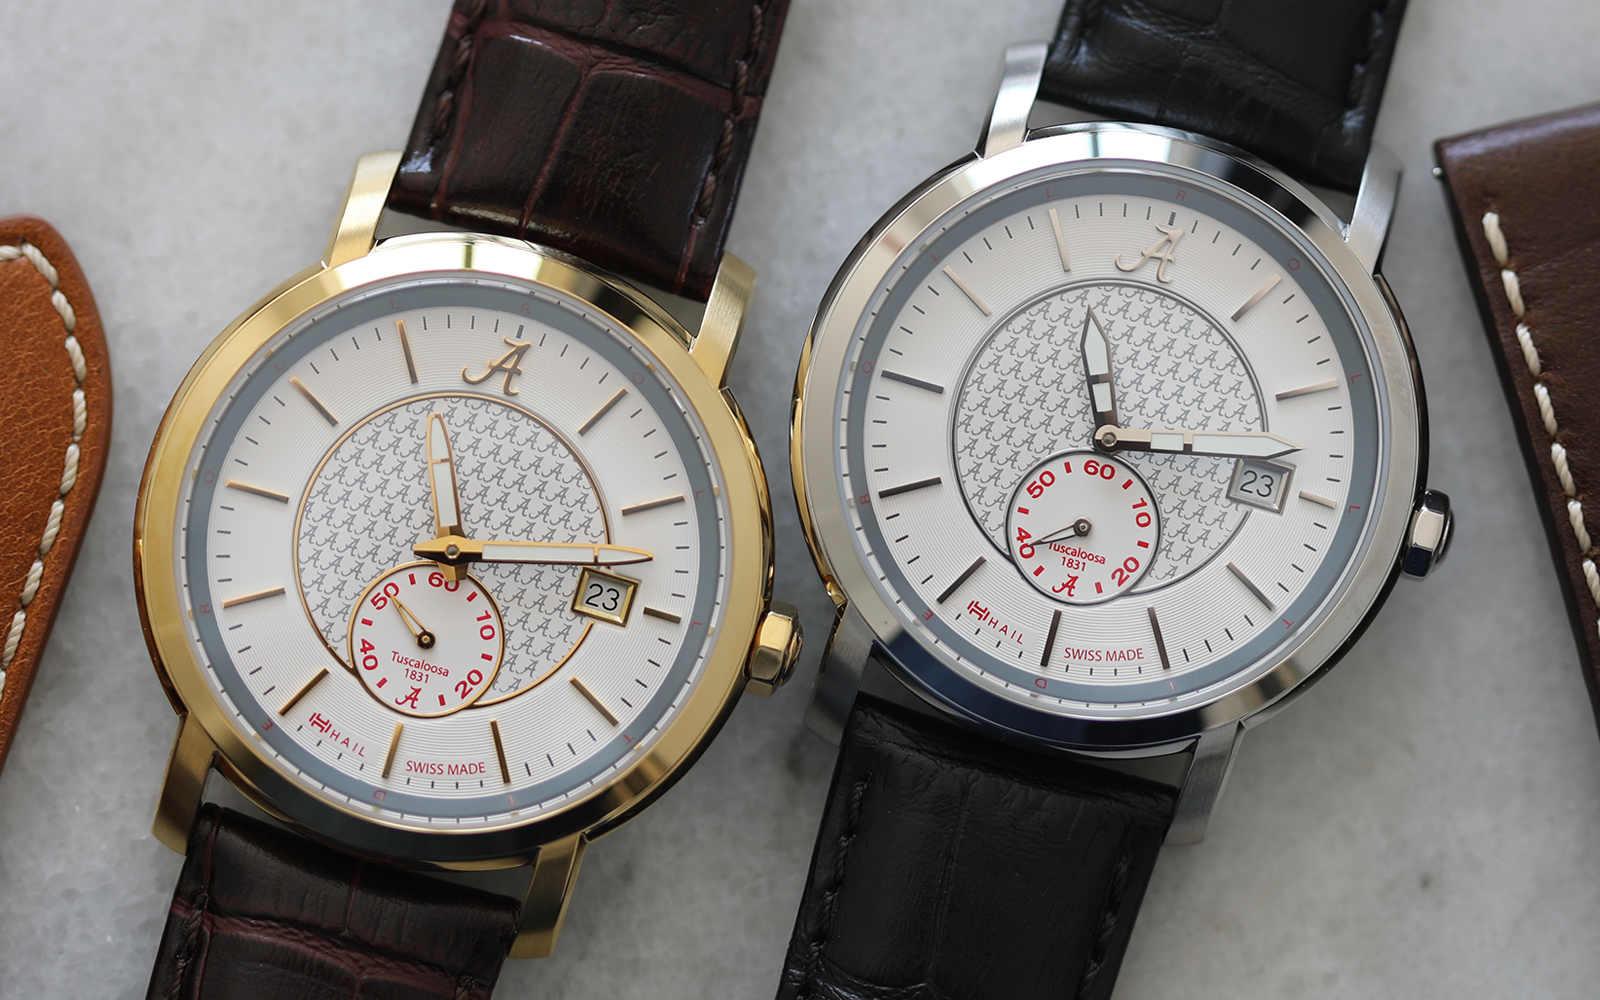 Item: picture of two watches